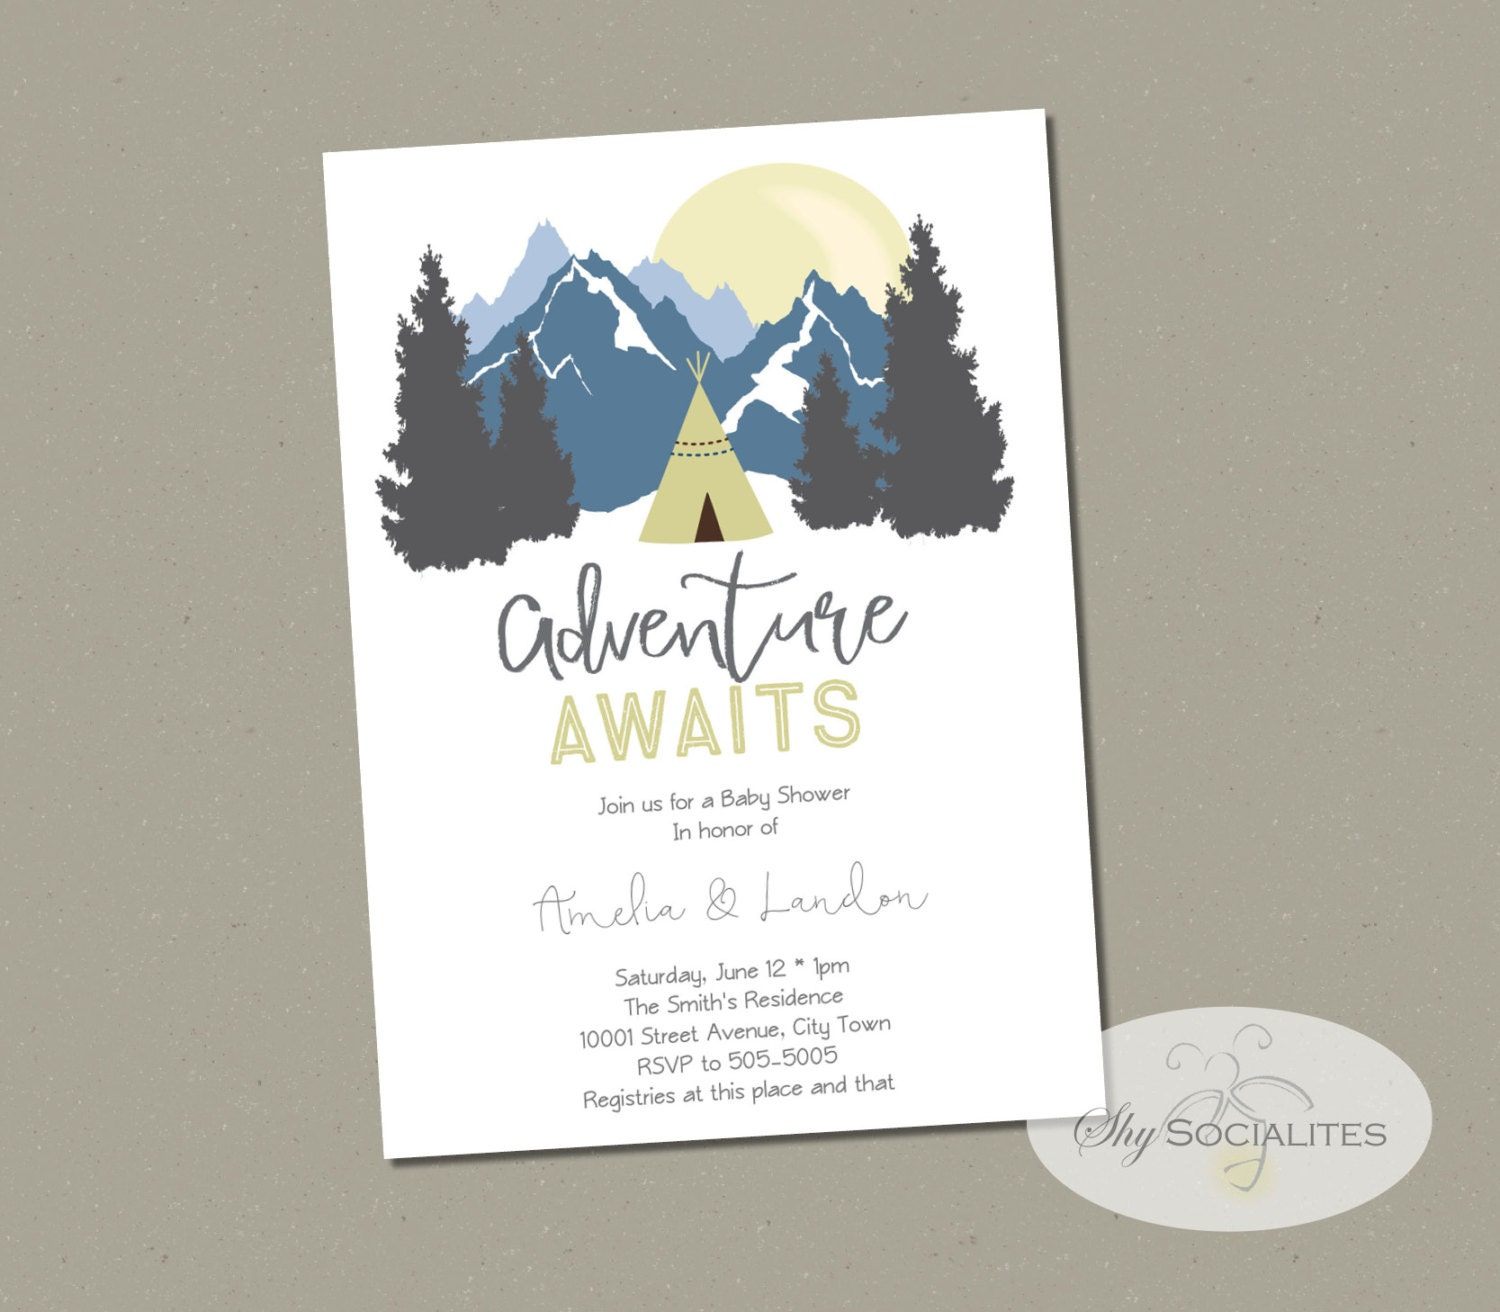 western wedding invites wording - Picture Ideas References